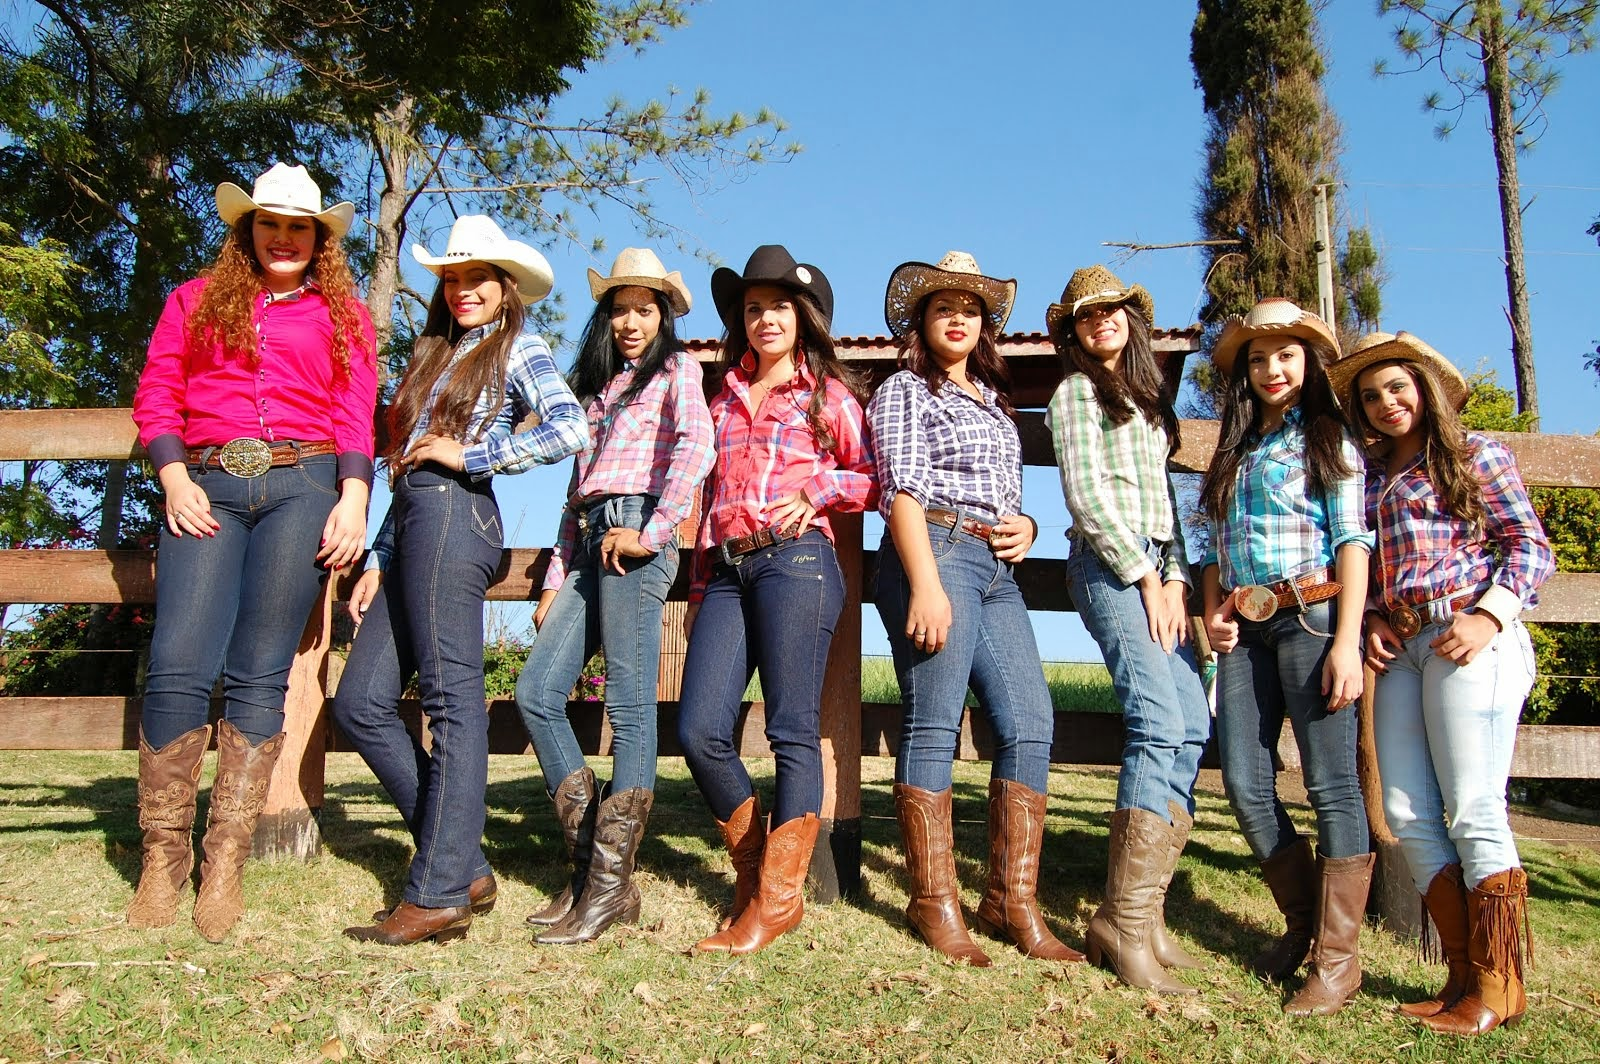 CANDIDATAS A RAINHA E PRINCESA DO RODEIO DE SANTO ANTONIO DO PARAISO..